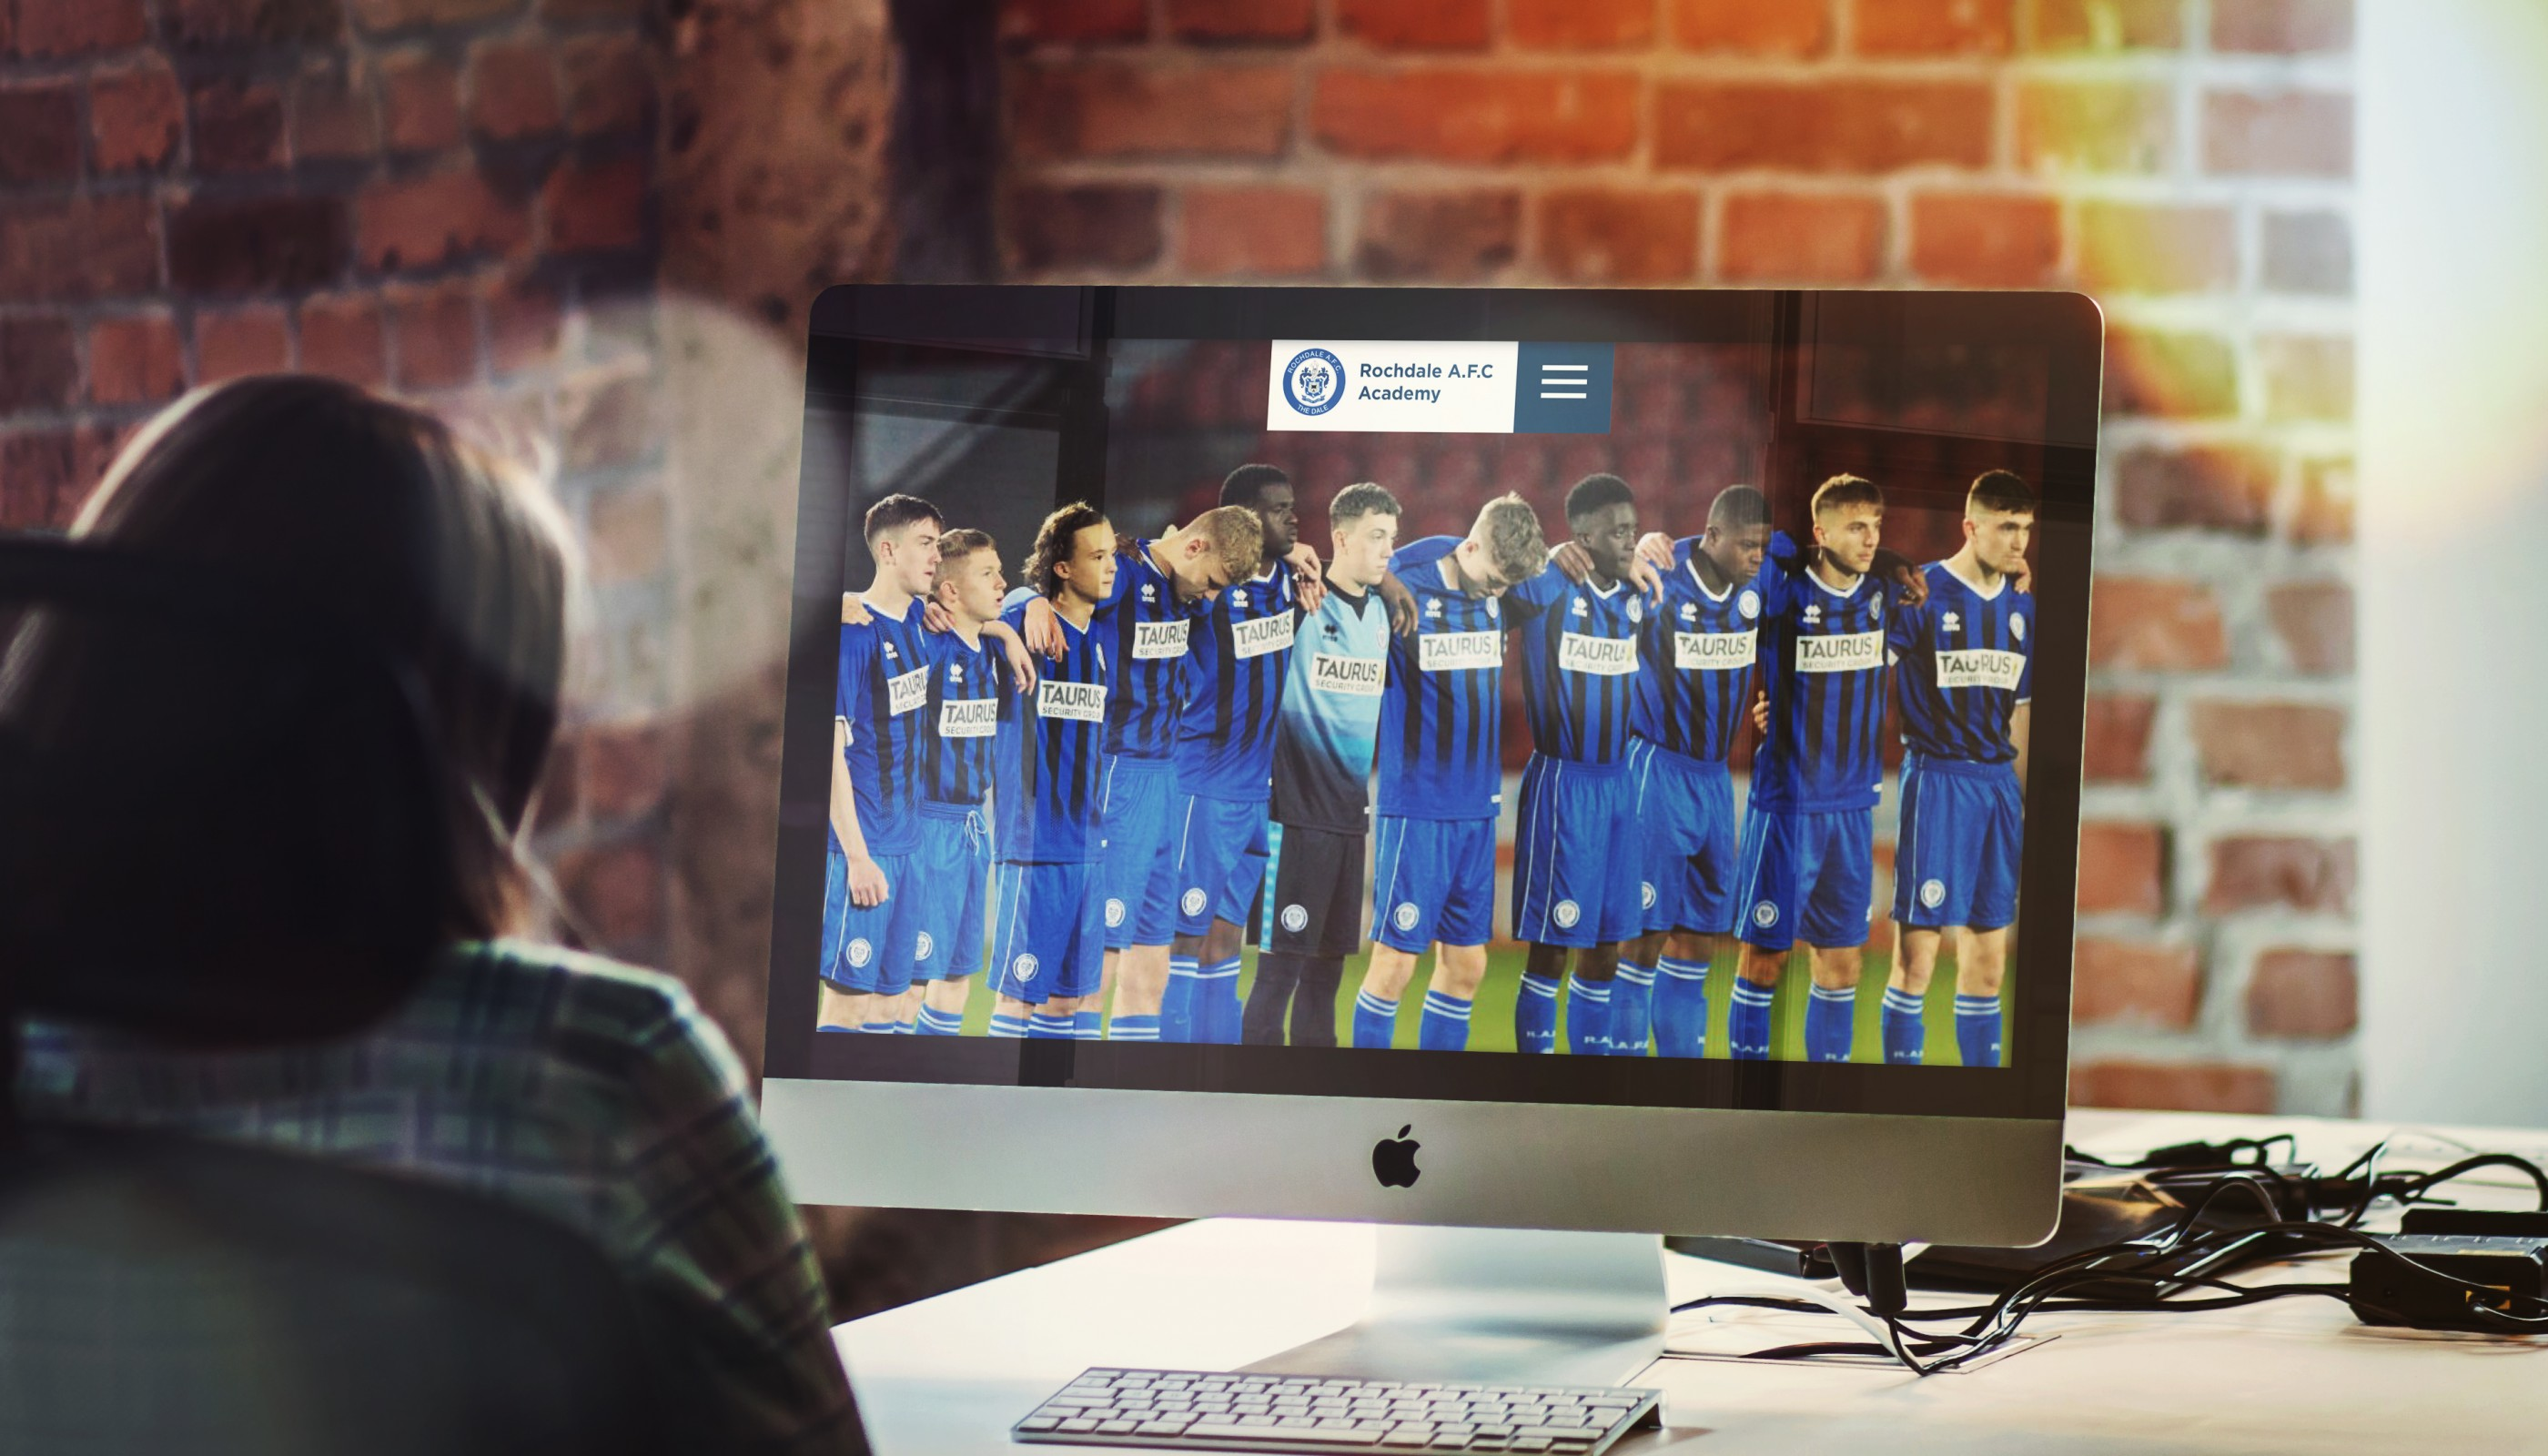 Rochdale Website Design for Rochdale AFC